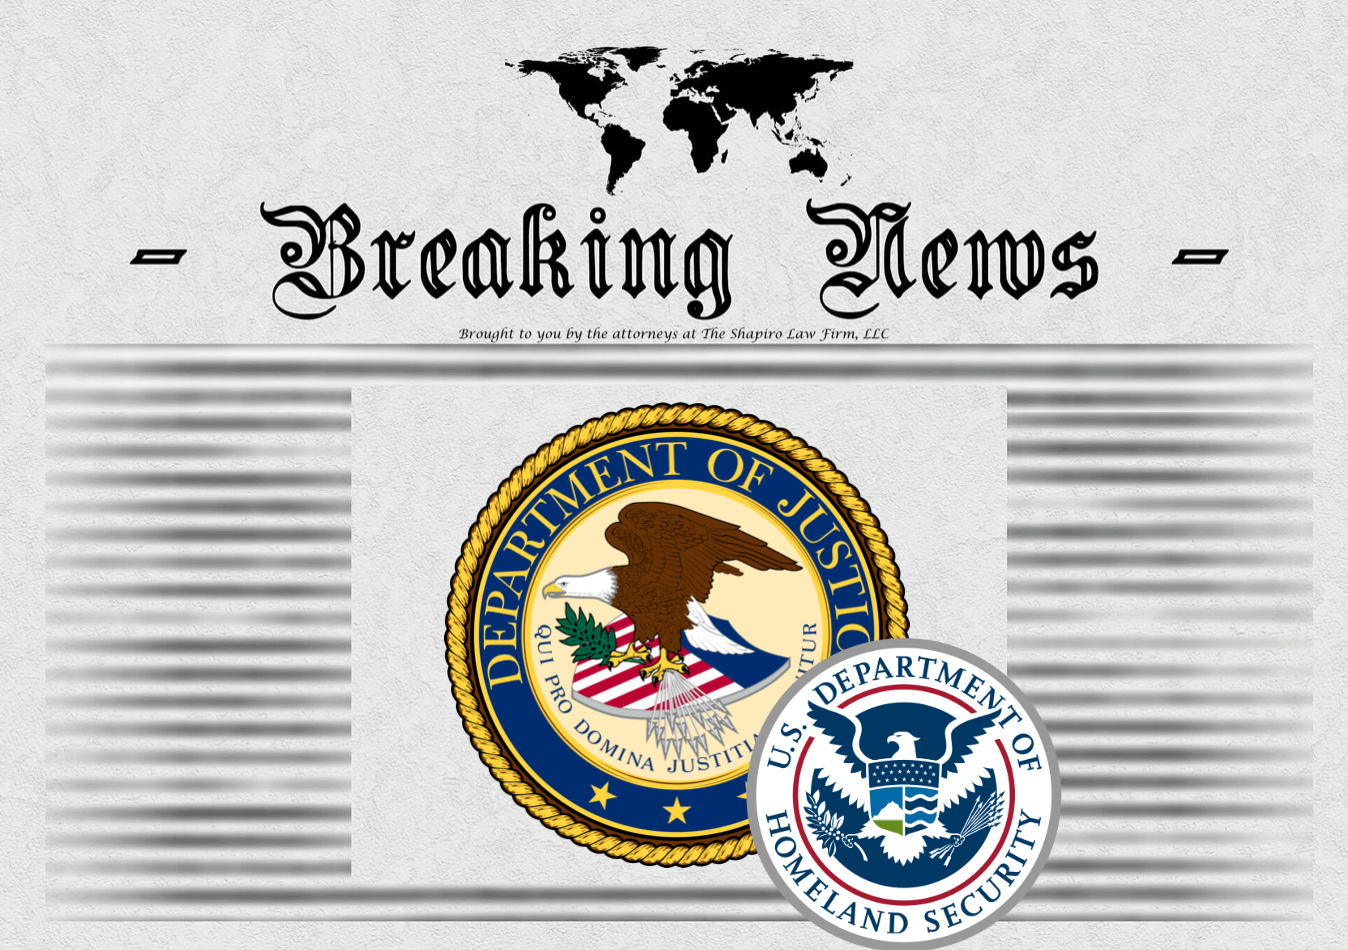 Breaking News - U.S. Department of Justice edition